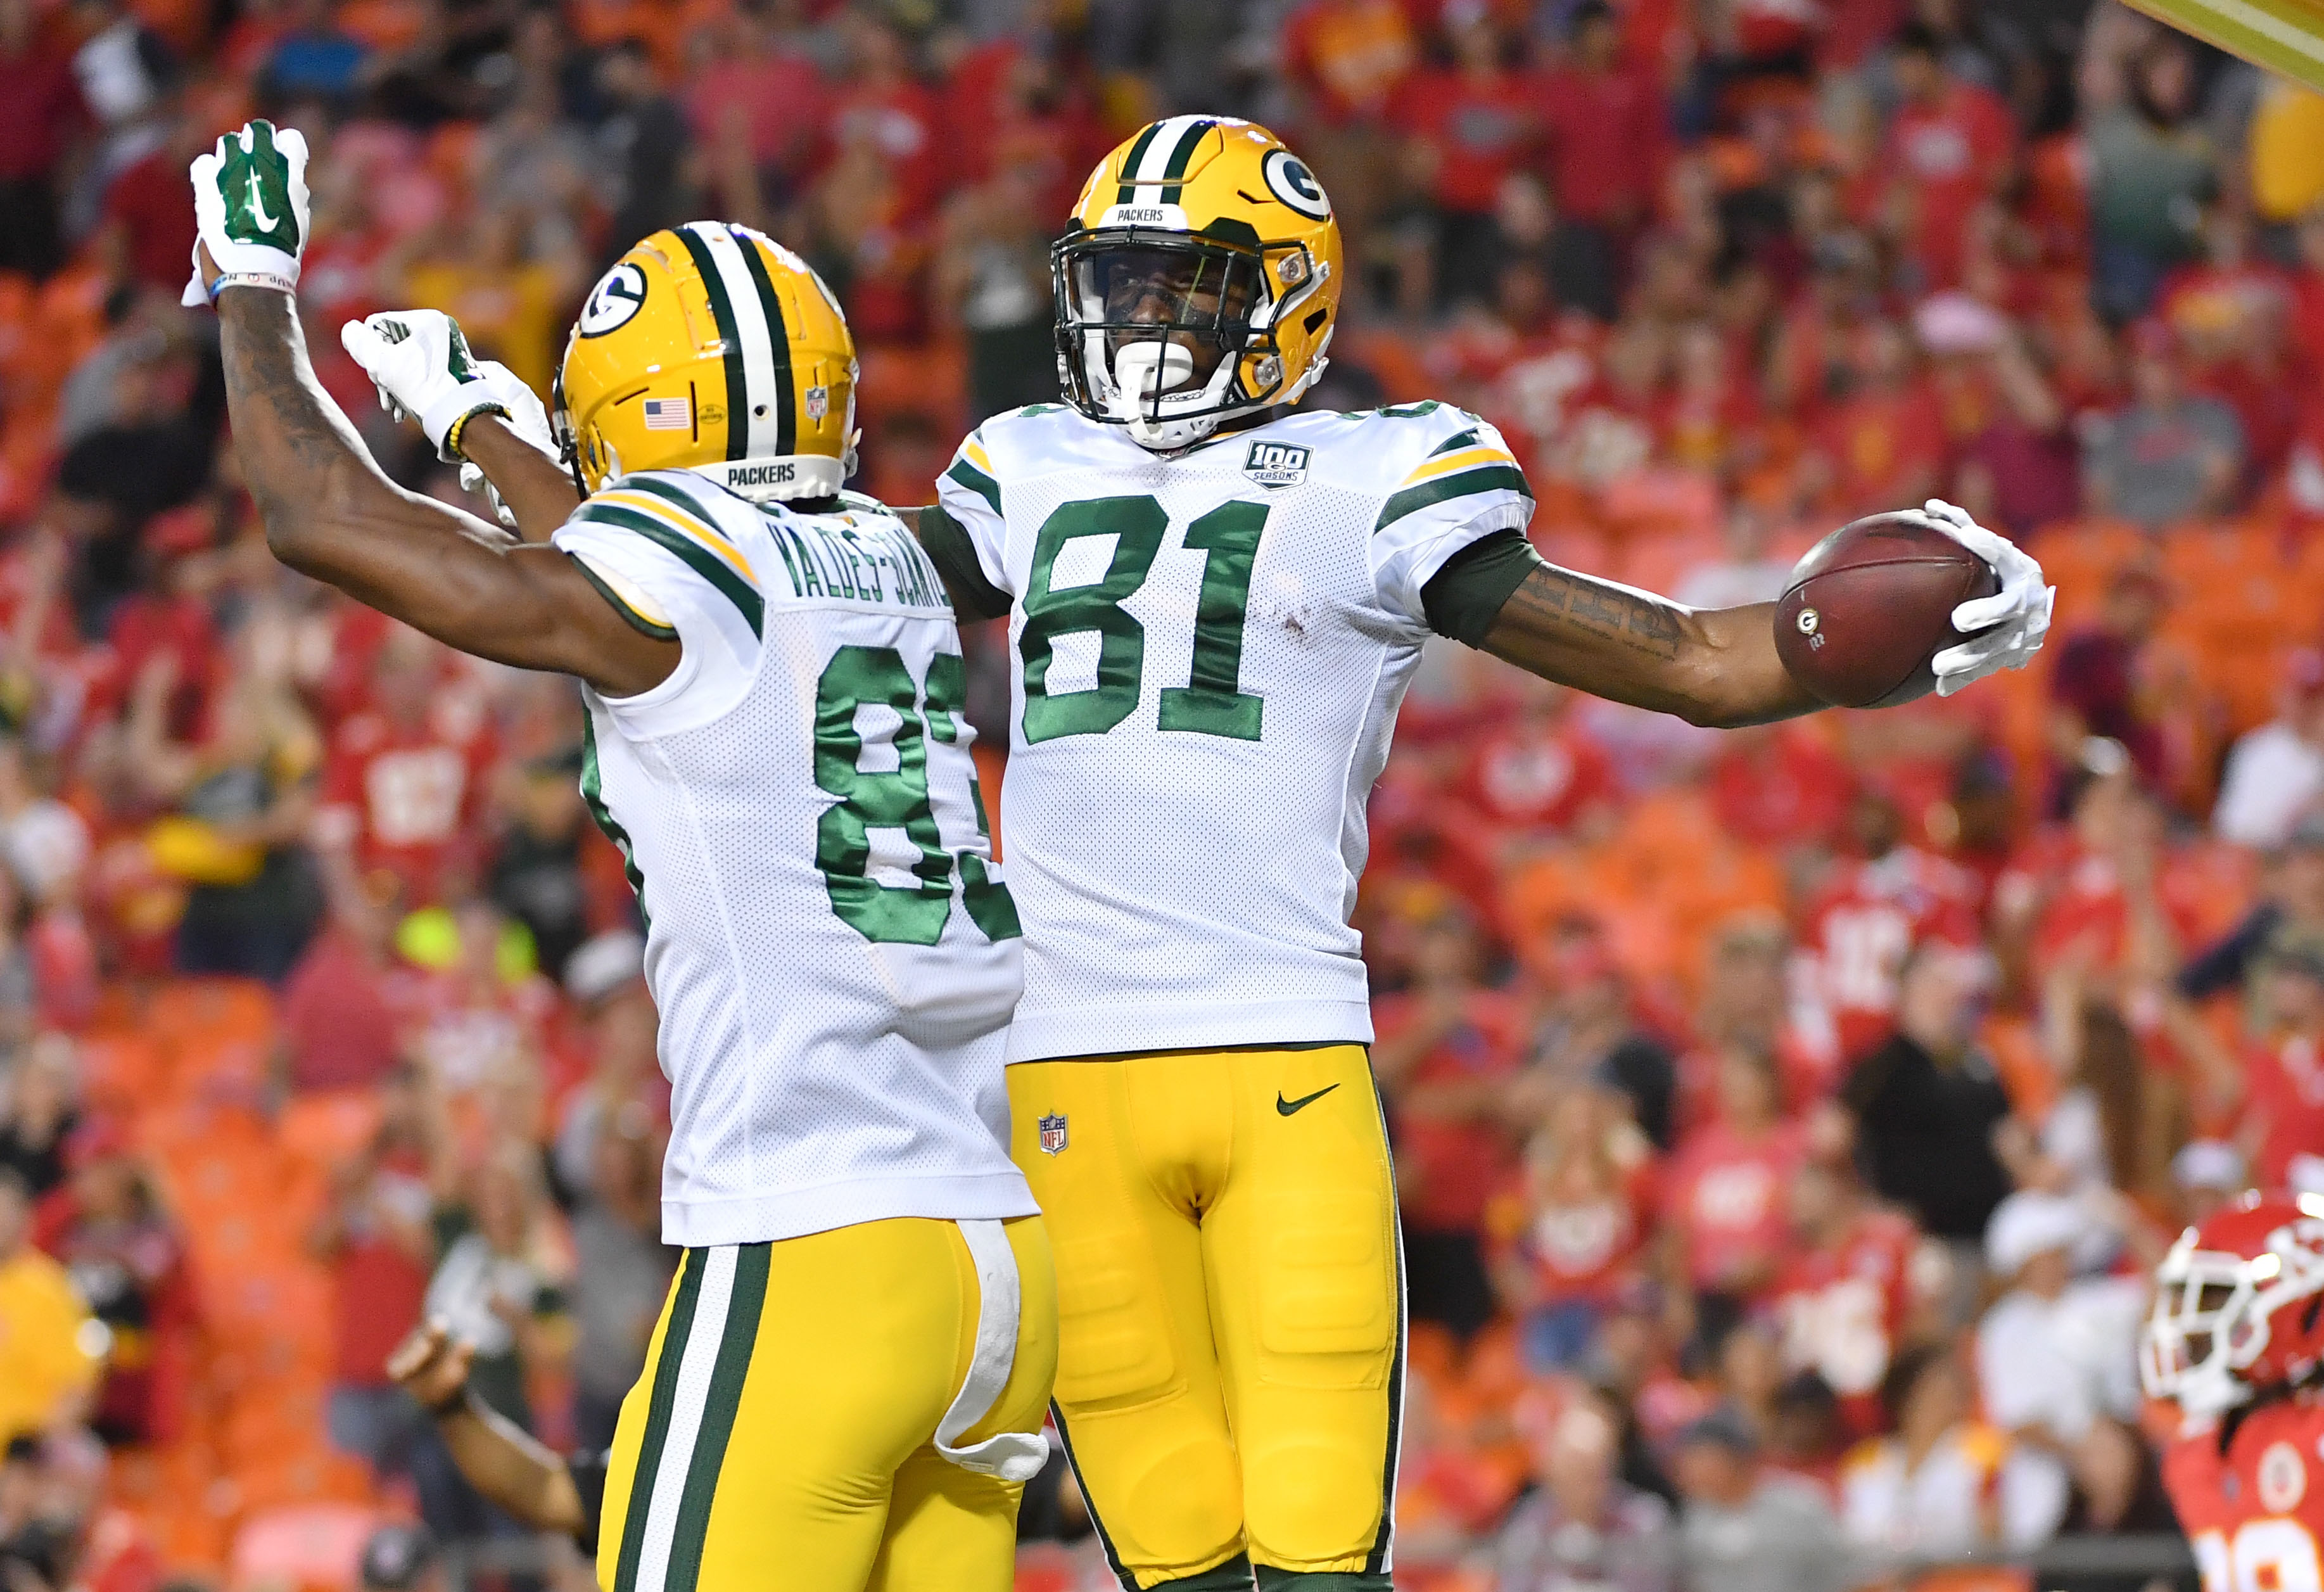 Aug 30, 2018; Kansas City, MO, USA; Green Bay Packers wide receiver Geronimo Allison (81) celebrates with wide receiver Marquez Valdes-Scantling (83) after scoring during the first half against the Kansas City Chiefs at Arrowhead Stadium. Mandatory Credit: Denny Medley-USA TODAY Sports